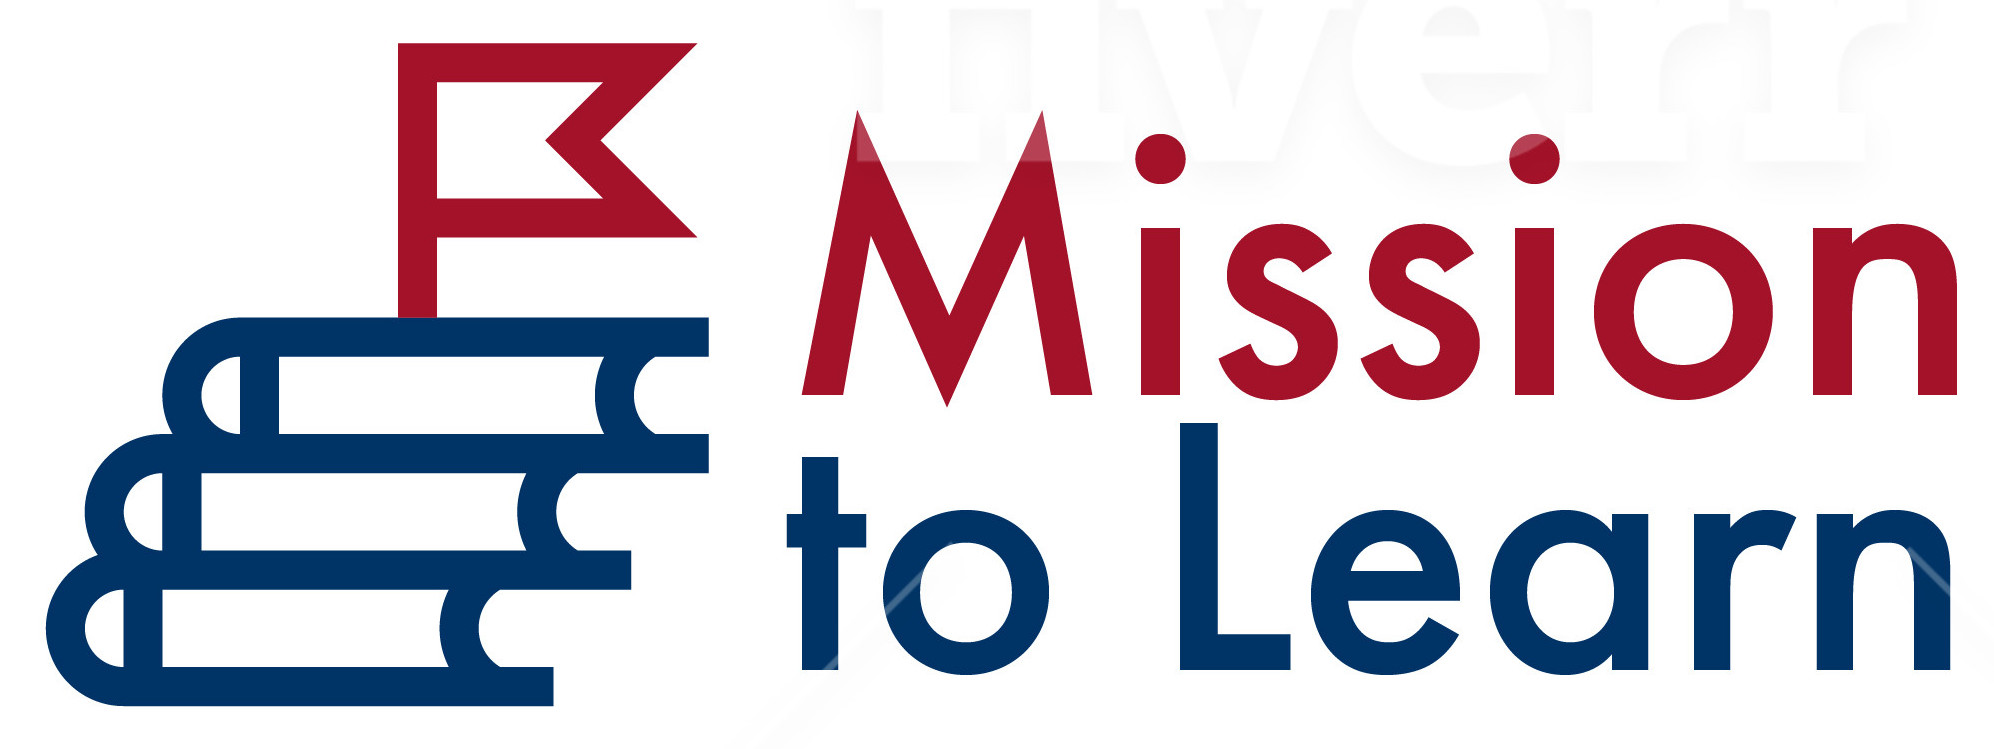 Mission to Learn Logo